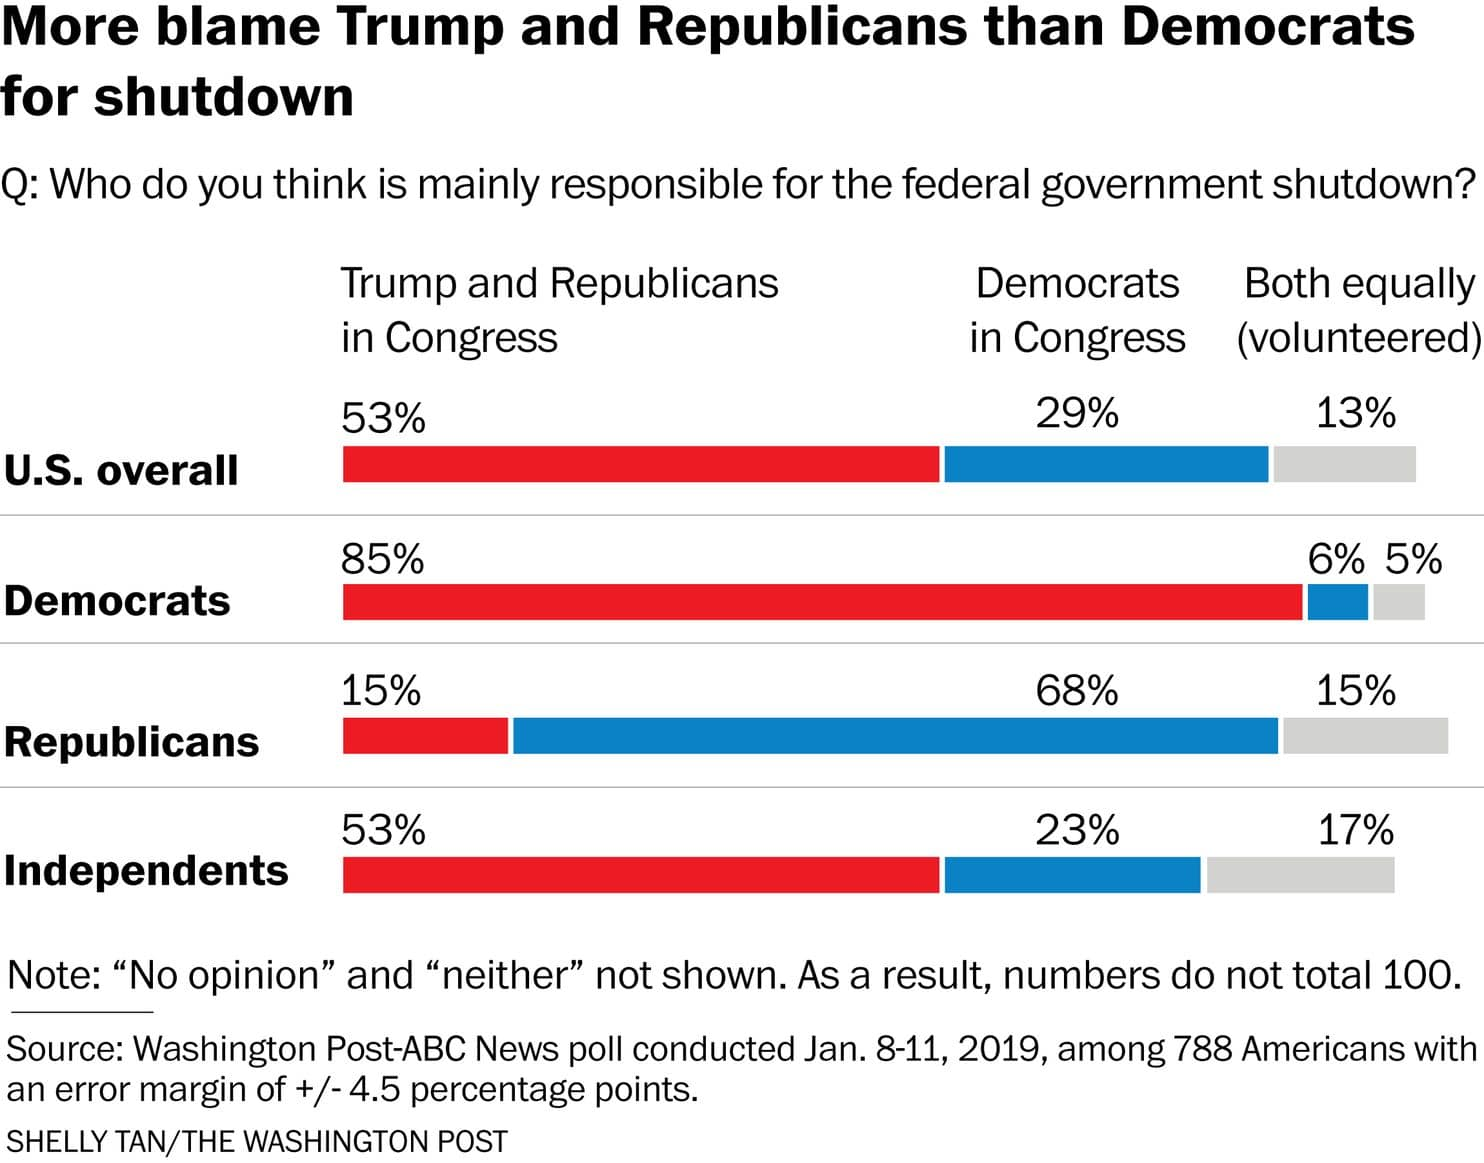 Americans blame Trump and GOP much more than Democrats for shutdown, Post-ABC poll finds